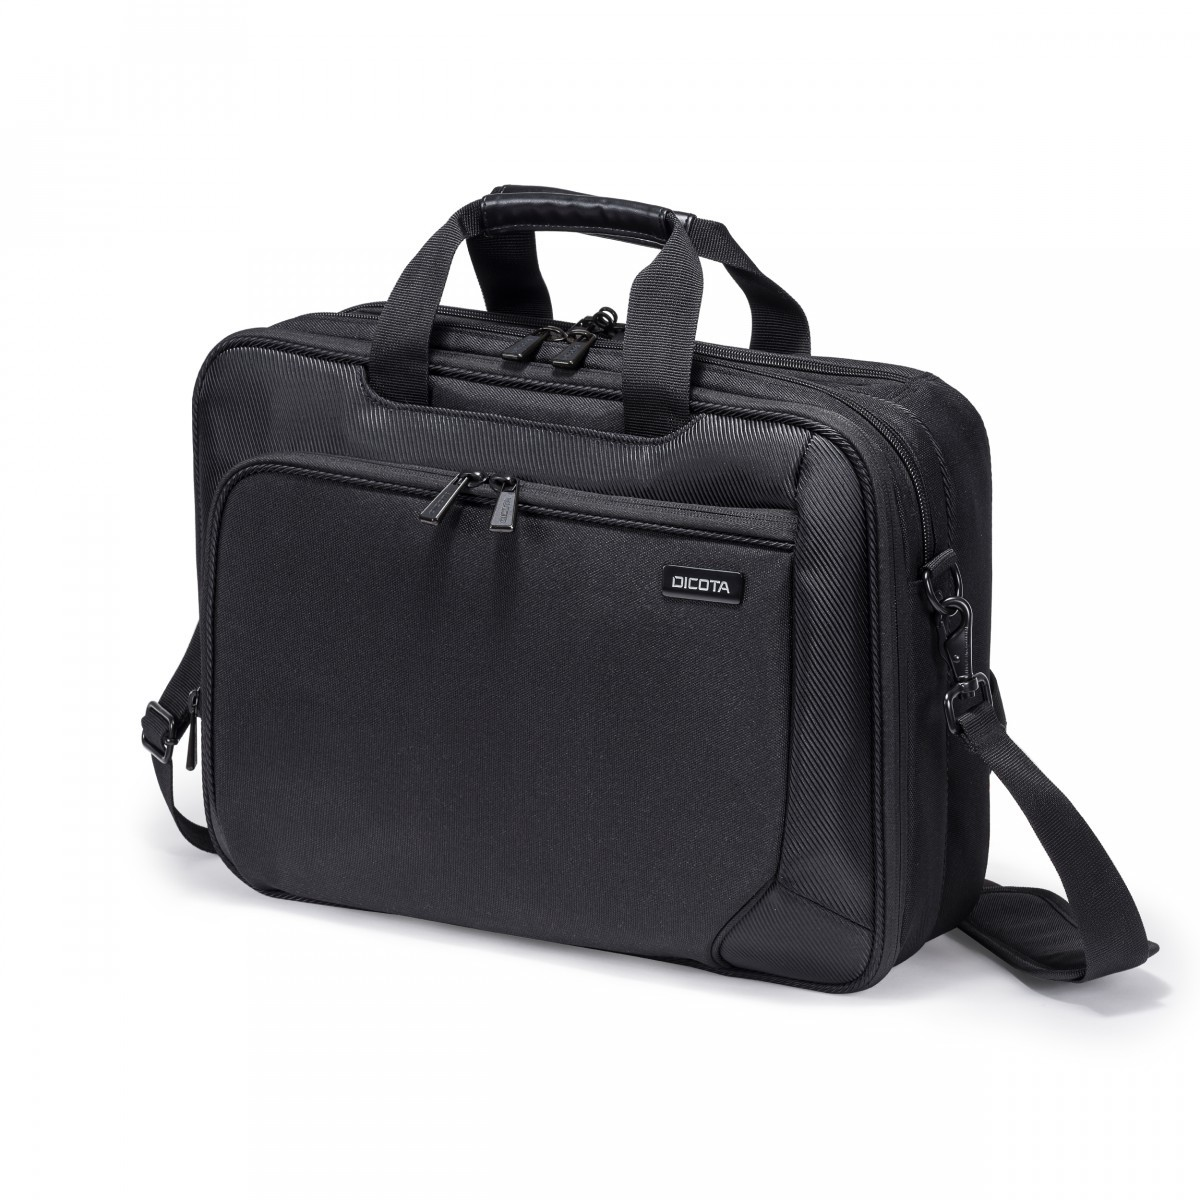 geanta notebook D30925 Top Traveller Dual ECO 14-15.6 inch